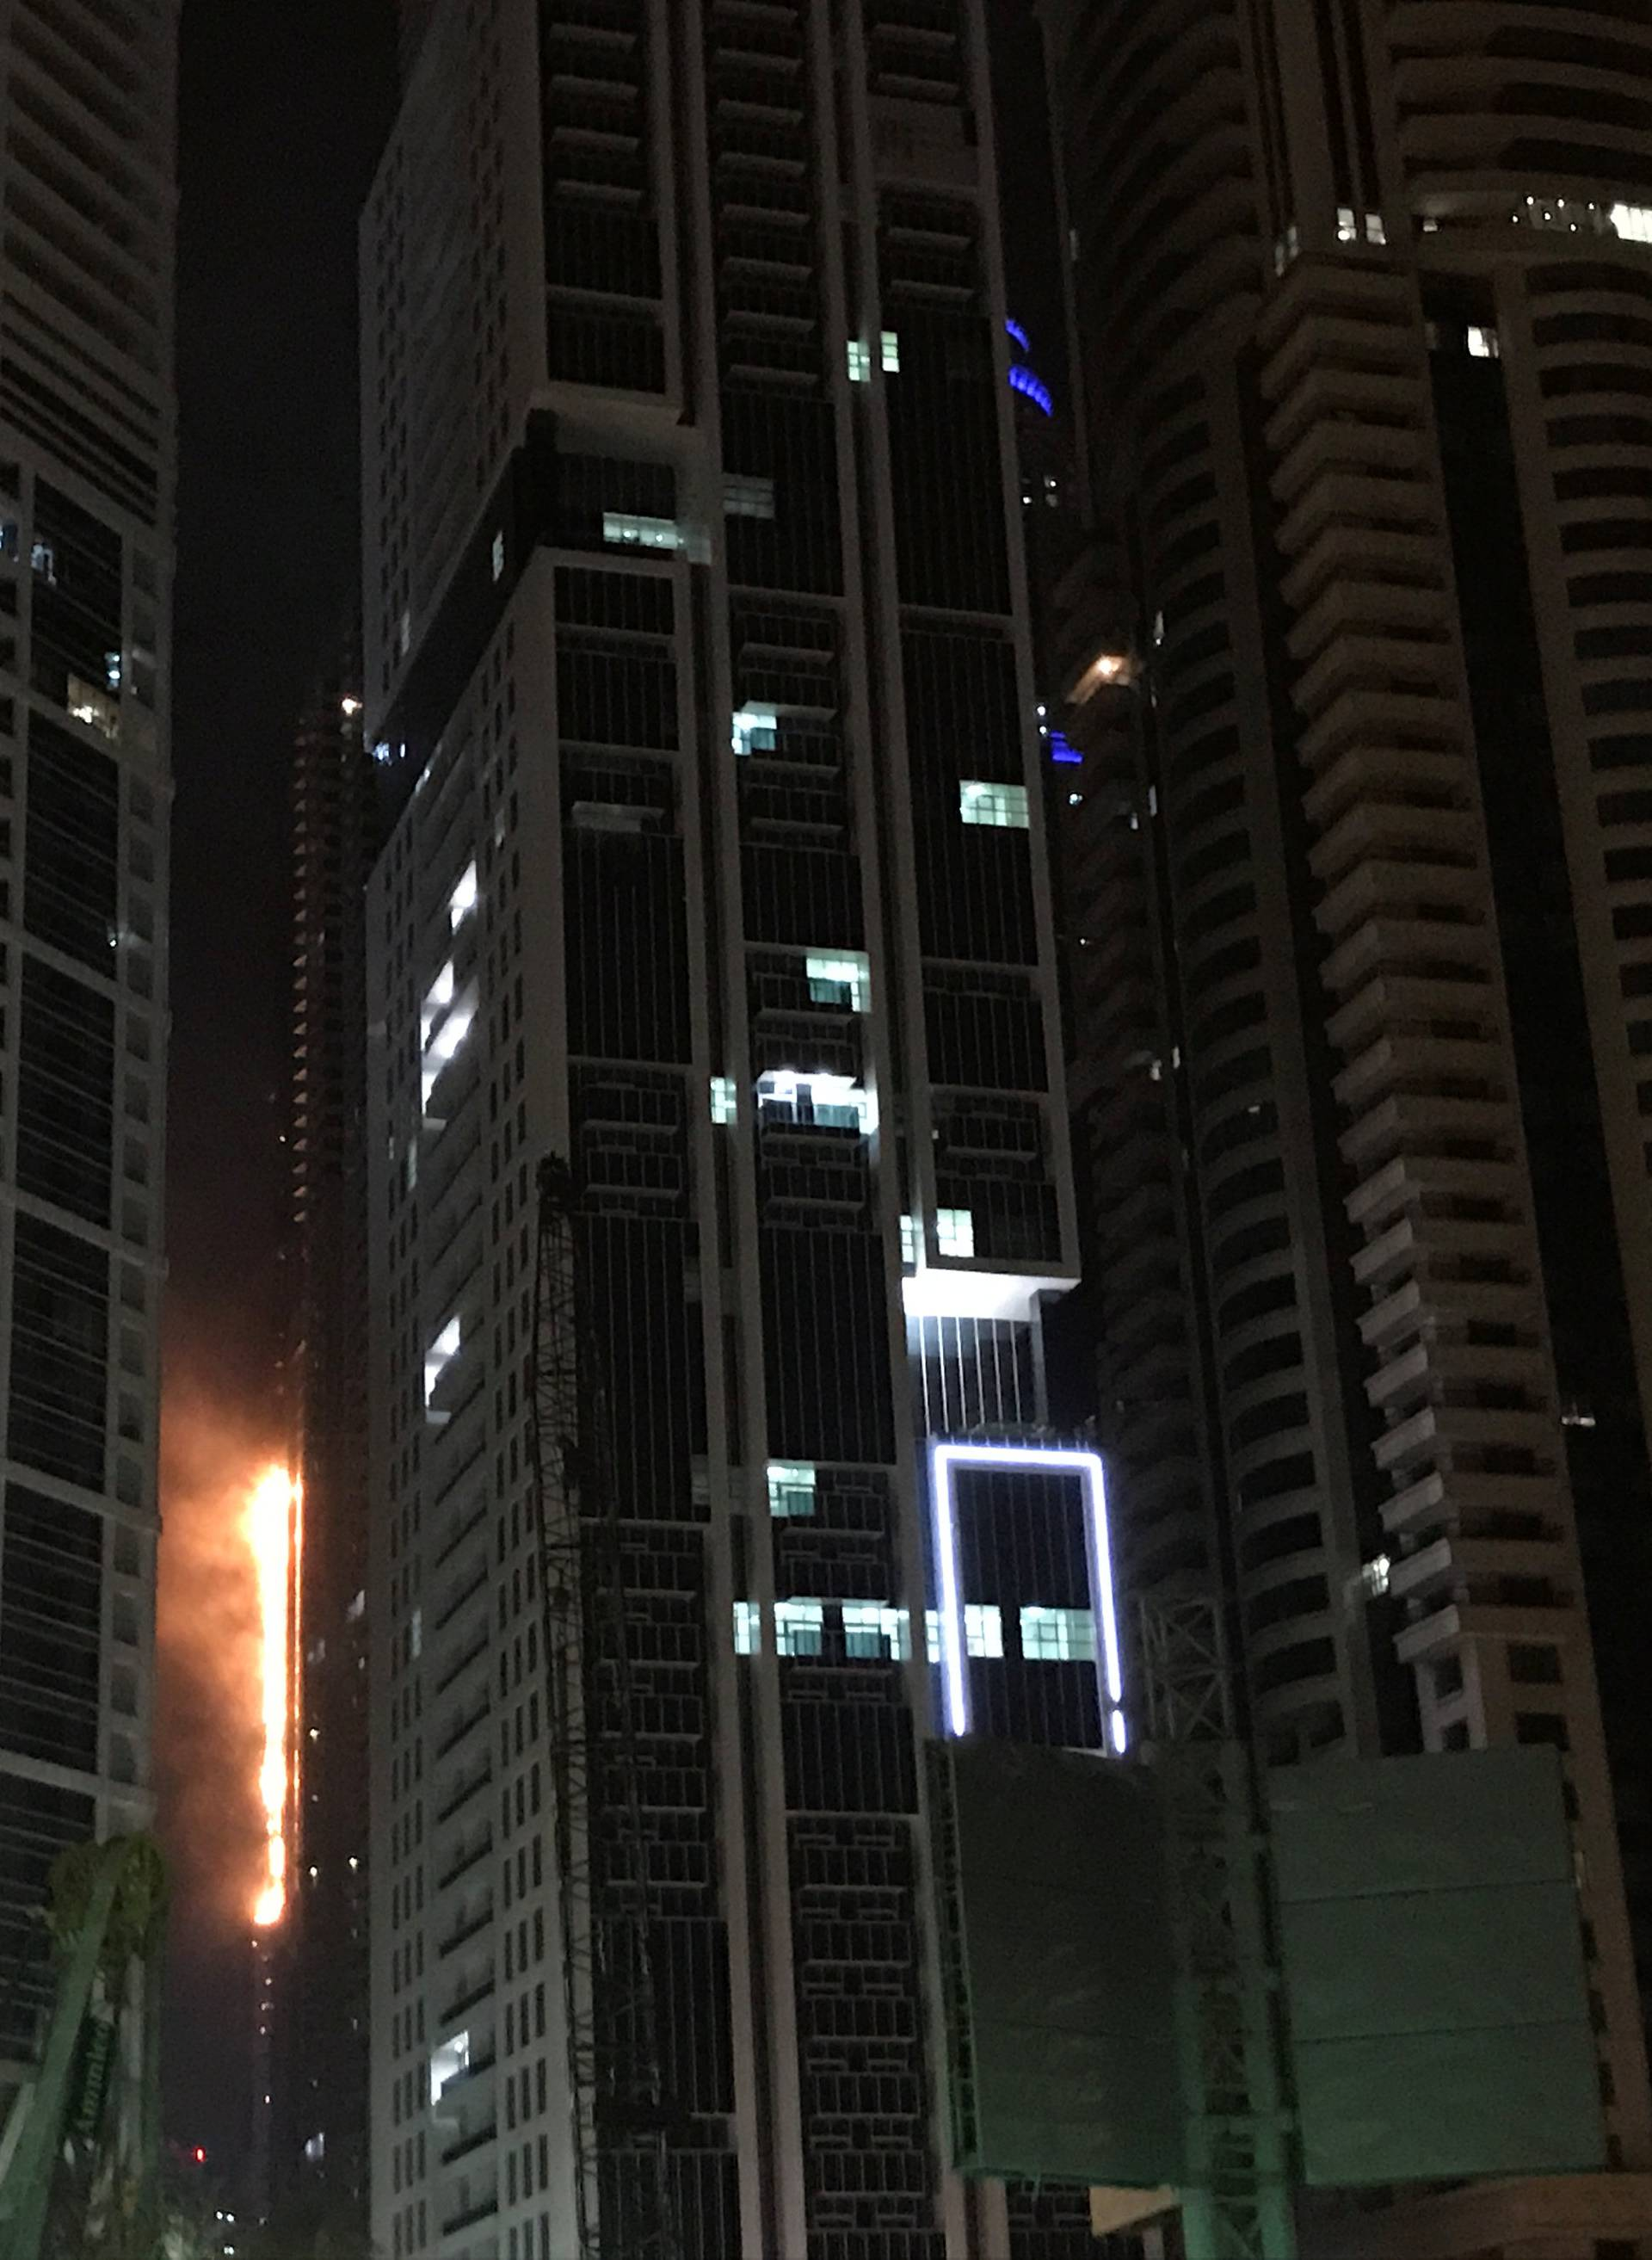 Flames shoot up the side of the Torch tower residential building in the Marina district, Dubai